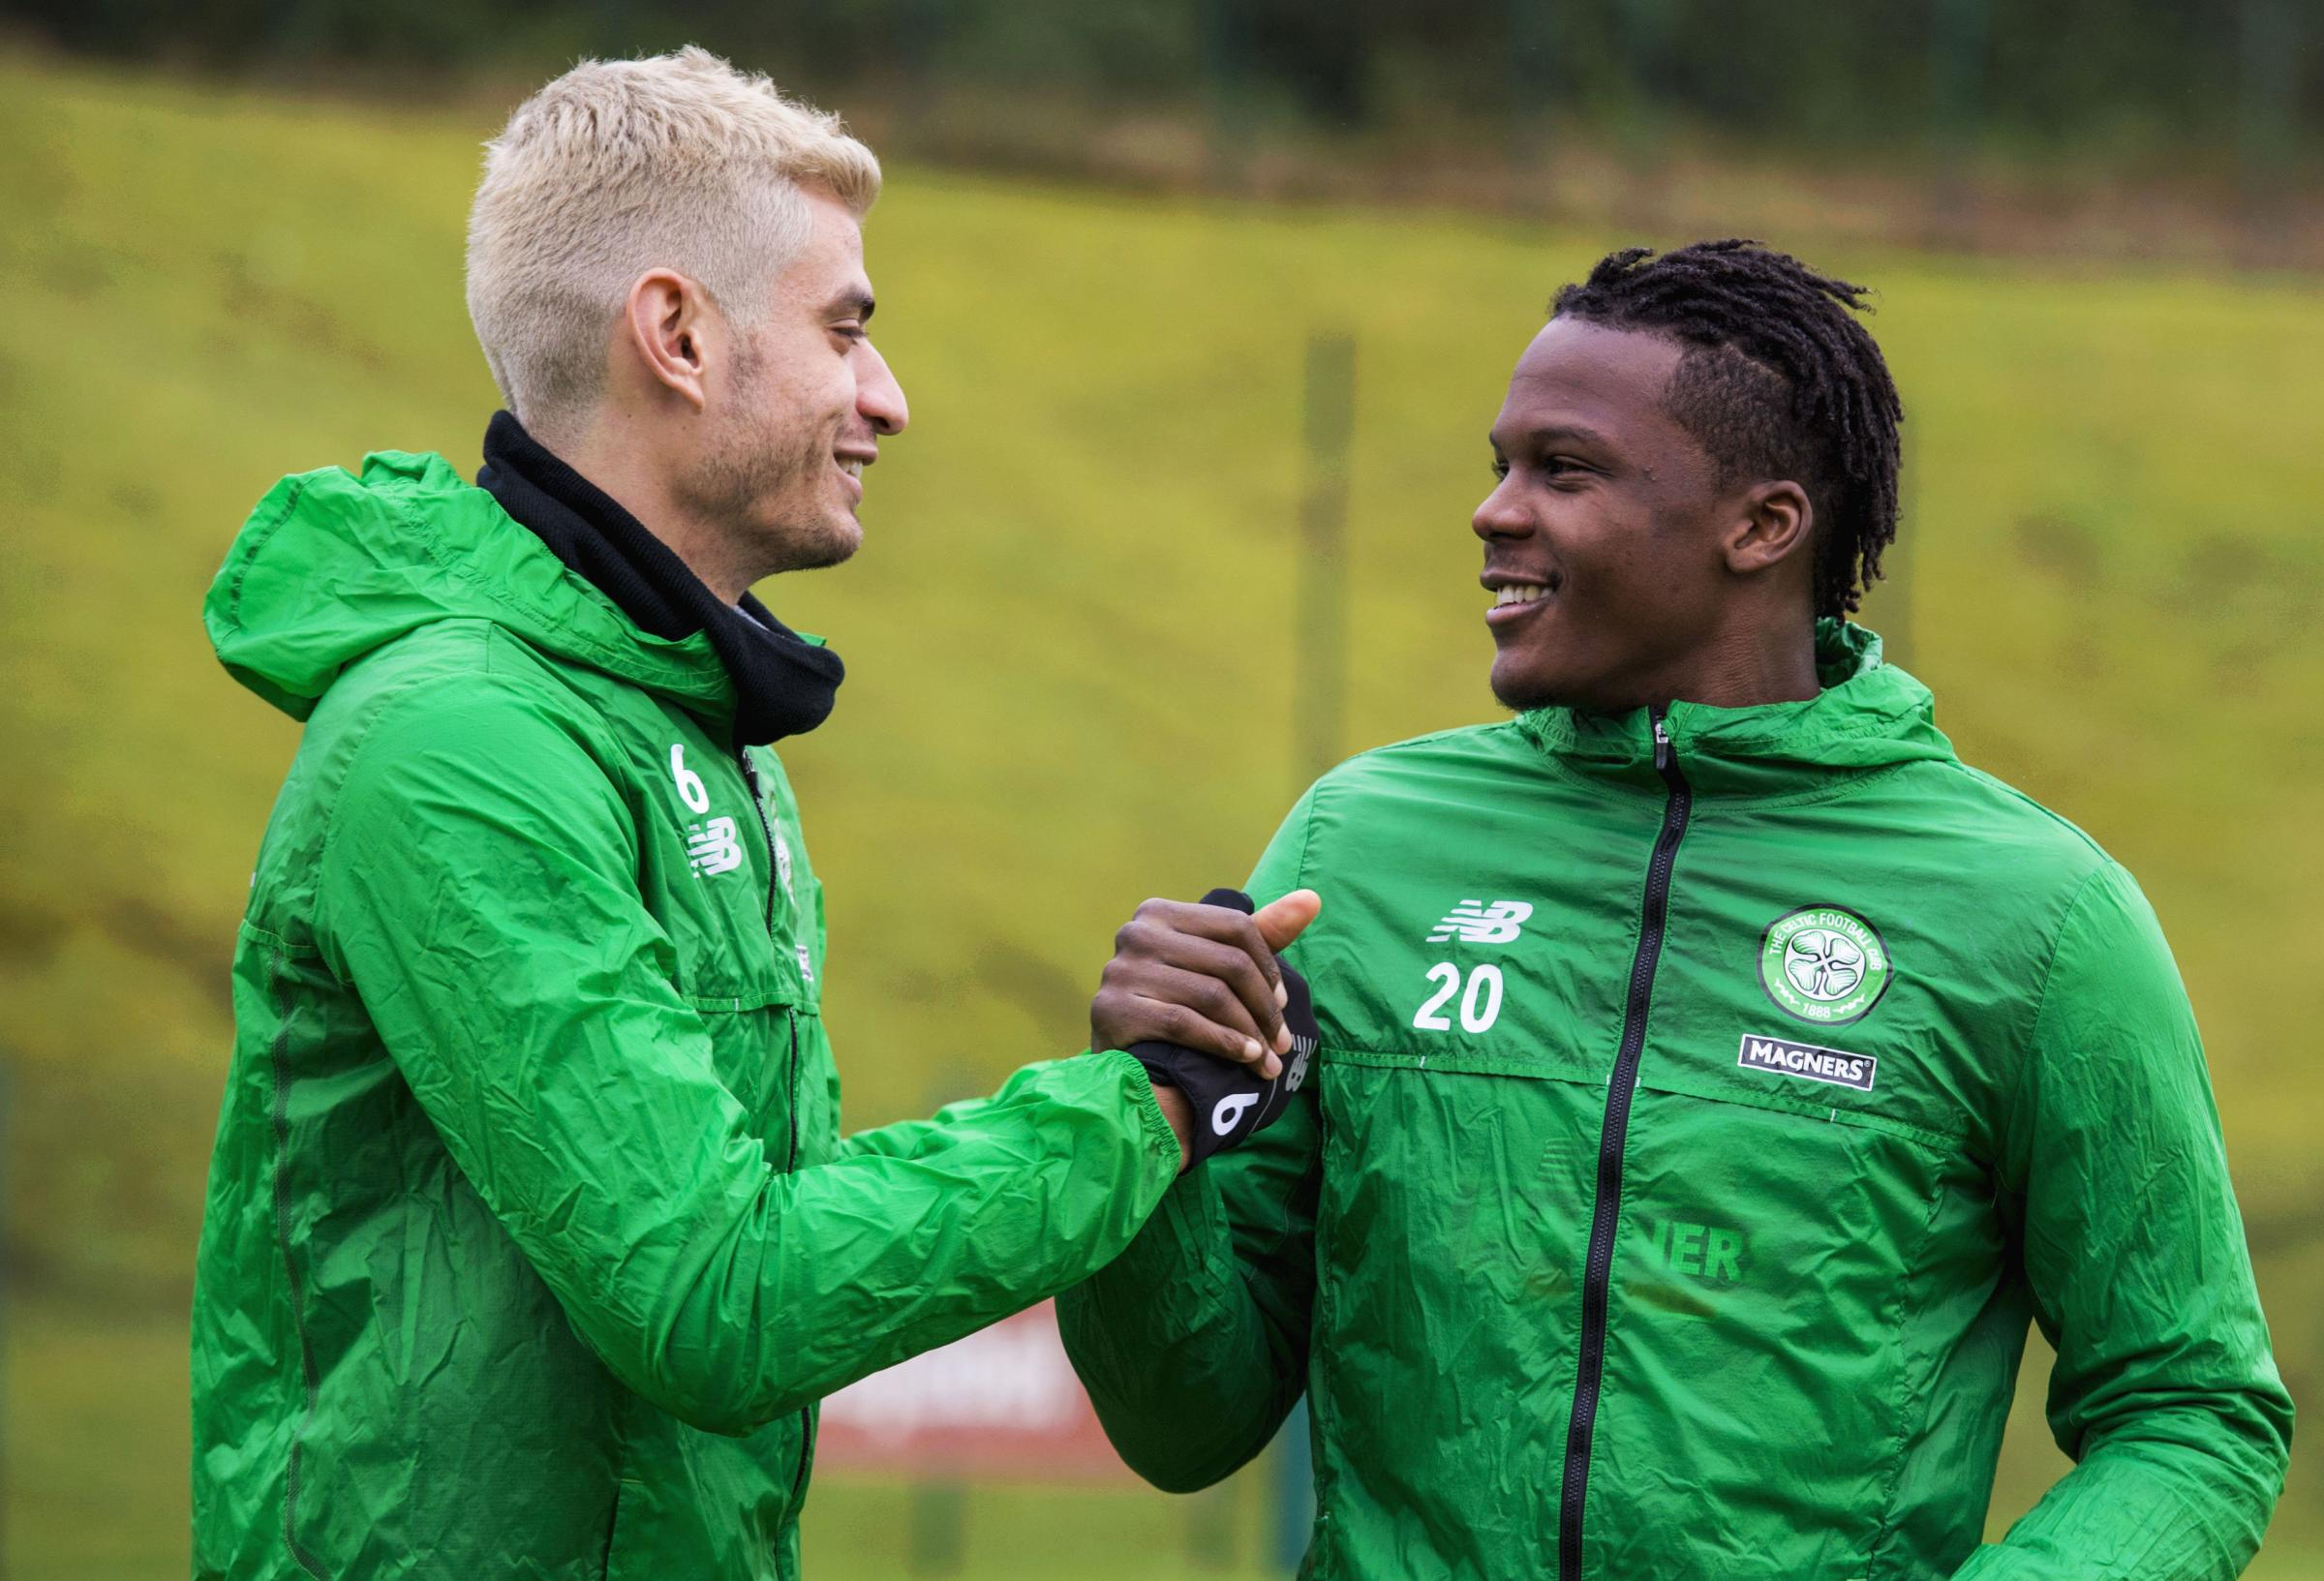 The life story of Celtic defender Dedryck Boyata makes your root for a man who came from nothing